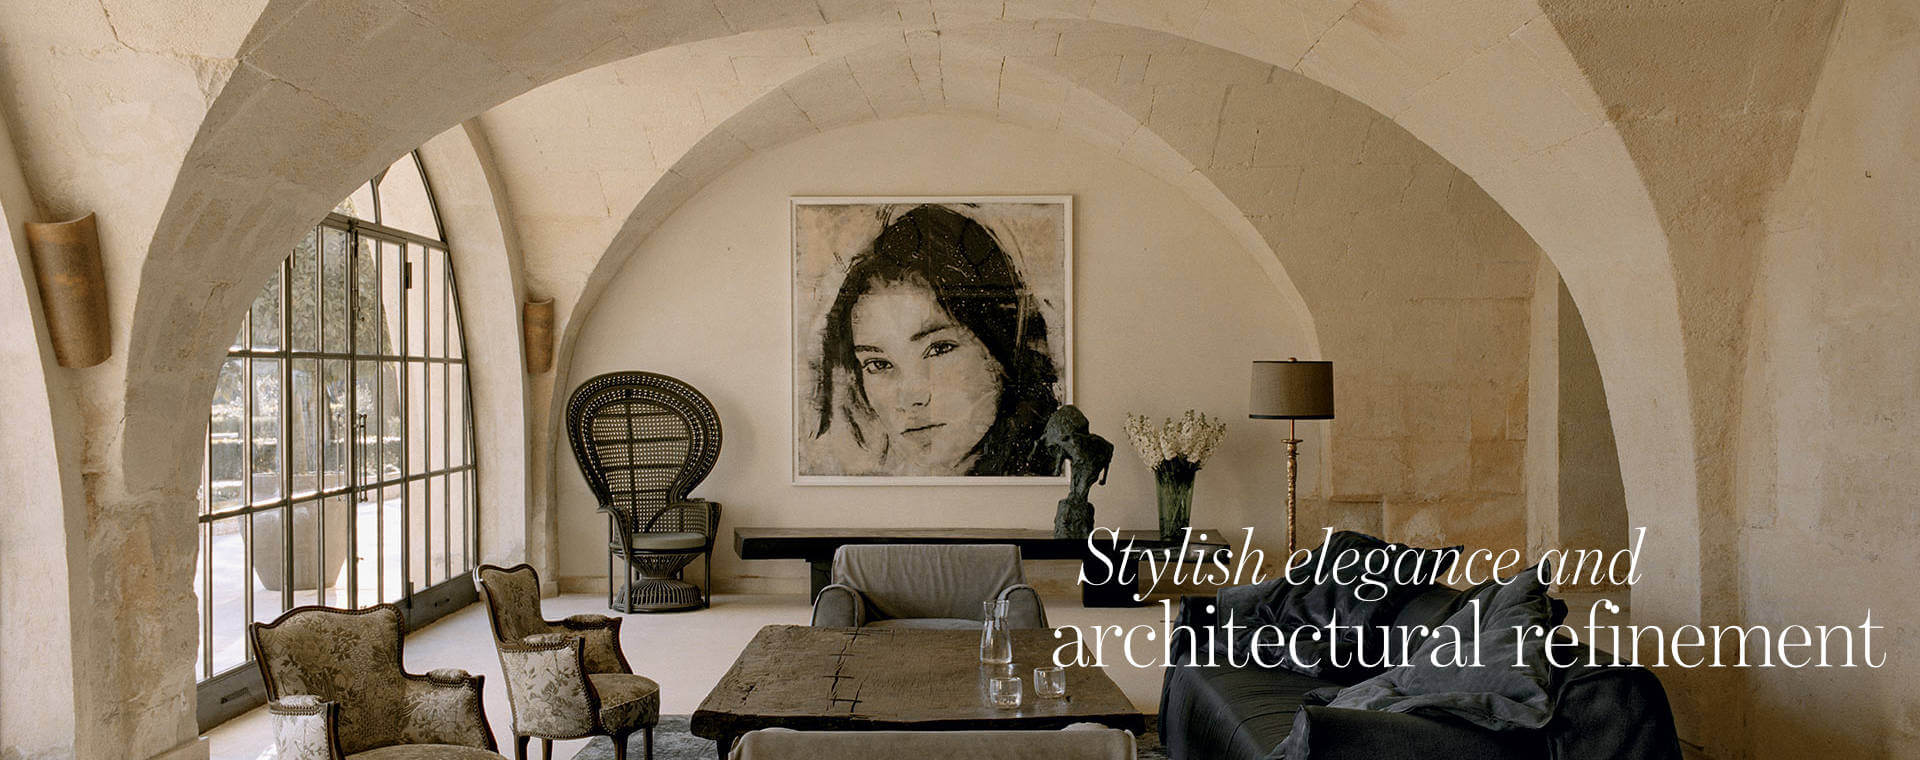 Interior of bastide in provence mixing traditional architecture and modern interiors